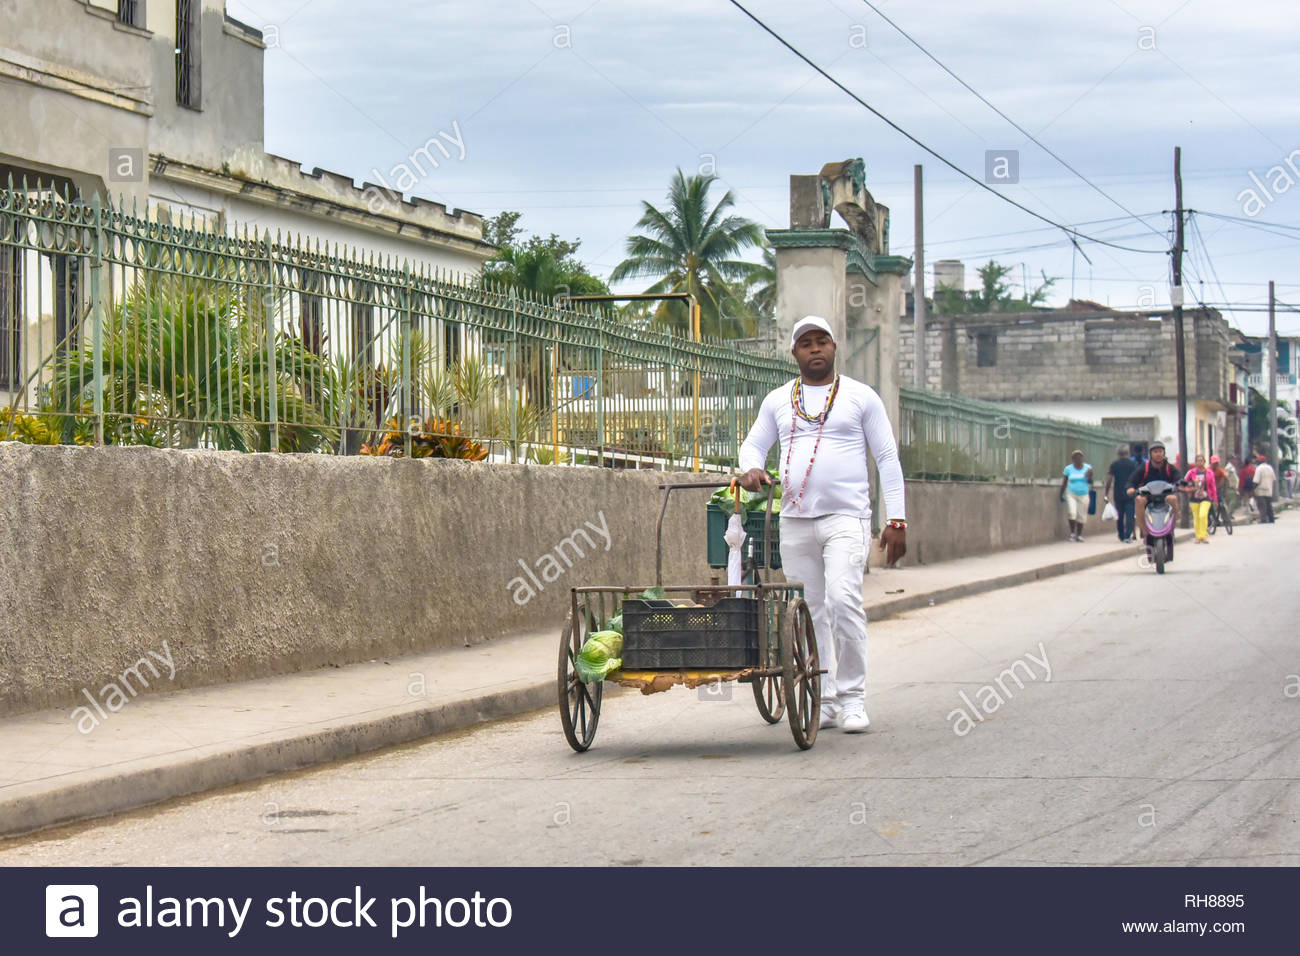 Cienfuegos, Cuba-January 24, 2019:   A 'Saint' candidate according to the religions of African origins. He wears totally white clothes. In his daily r - Stock Image